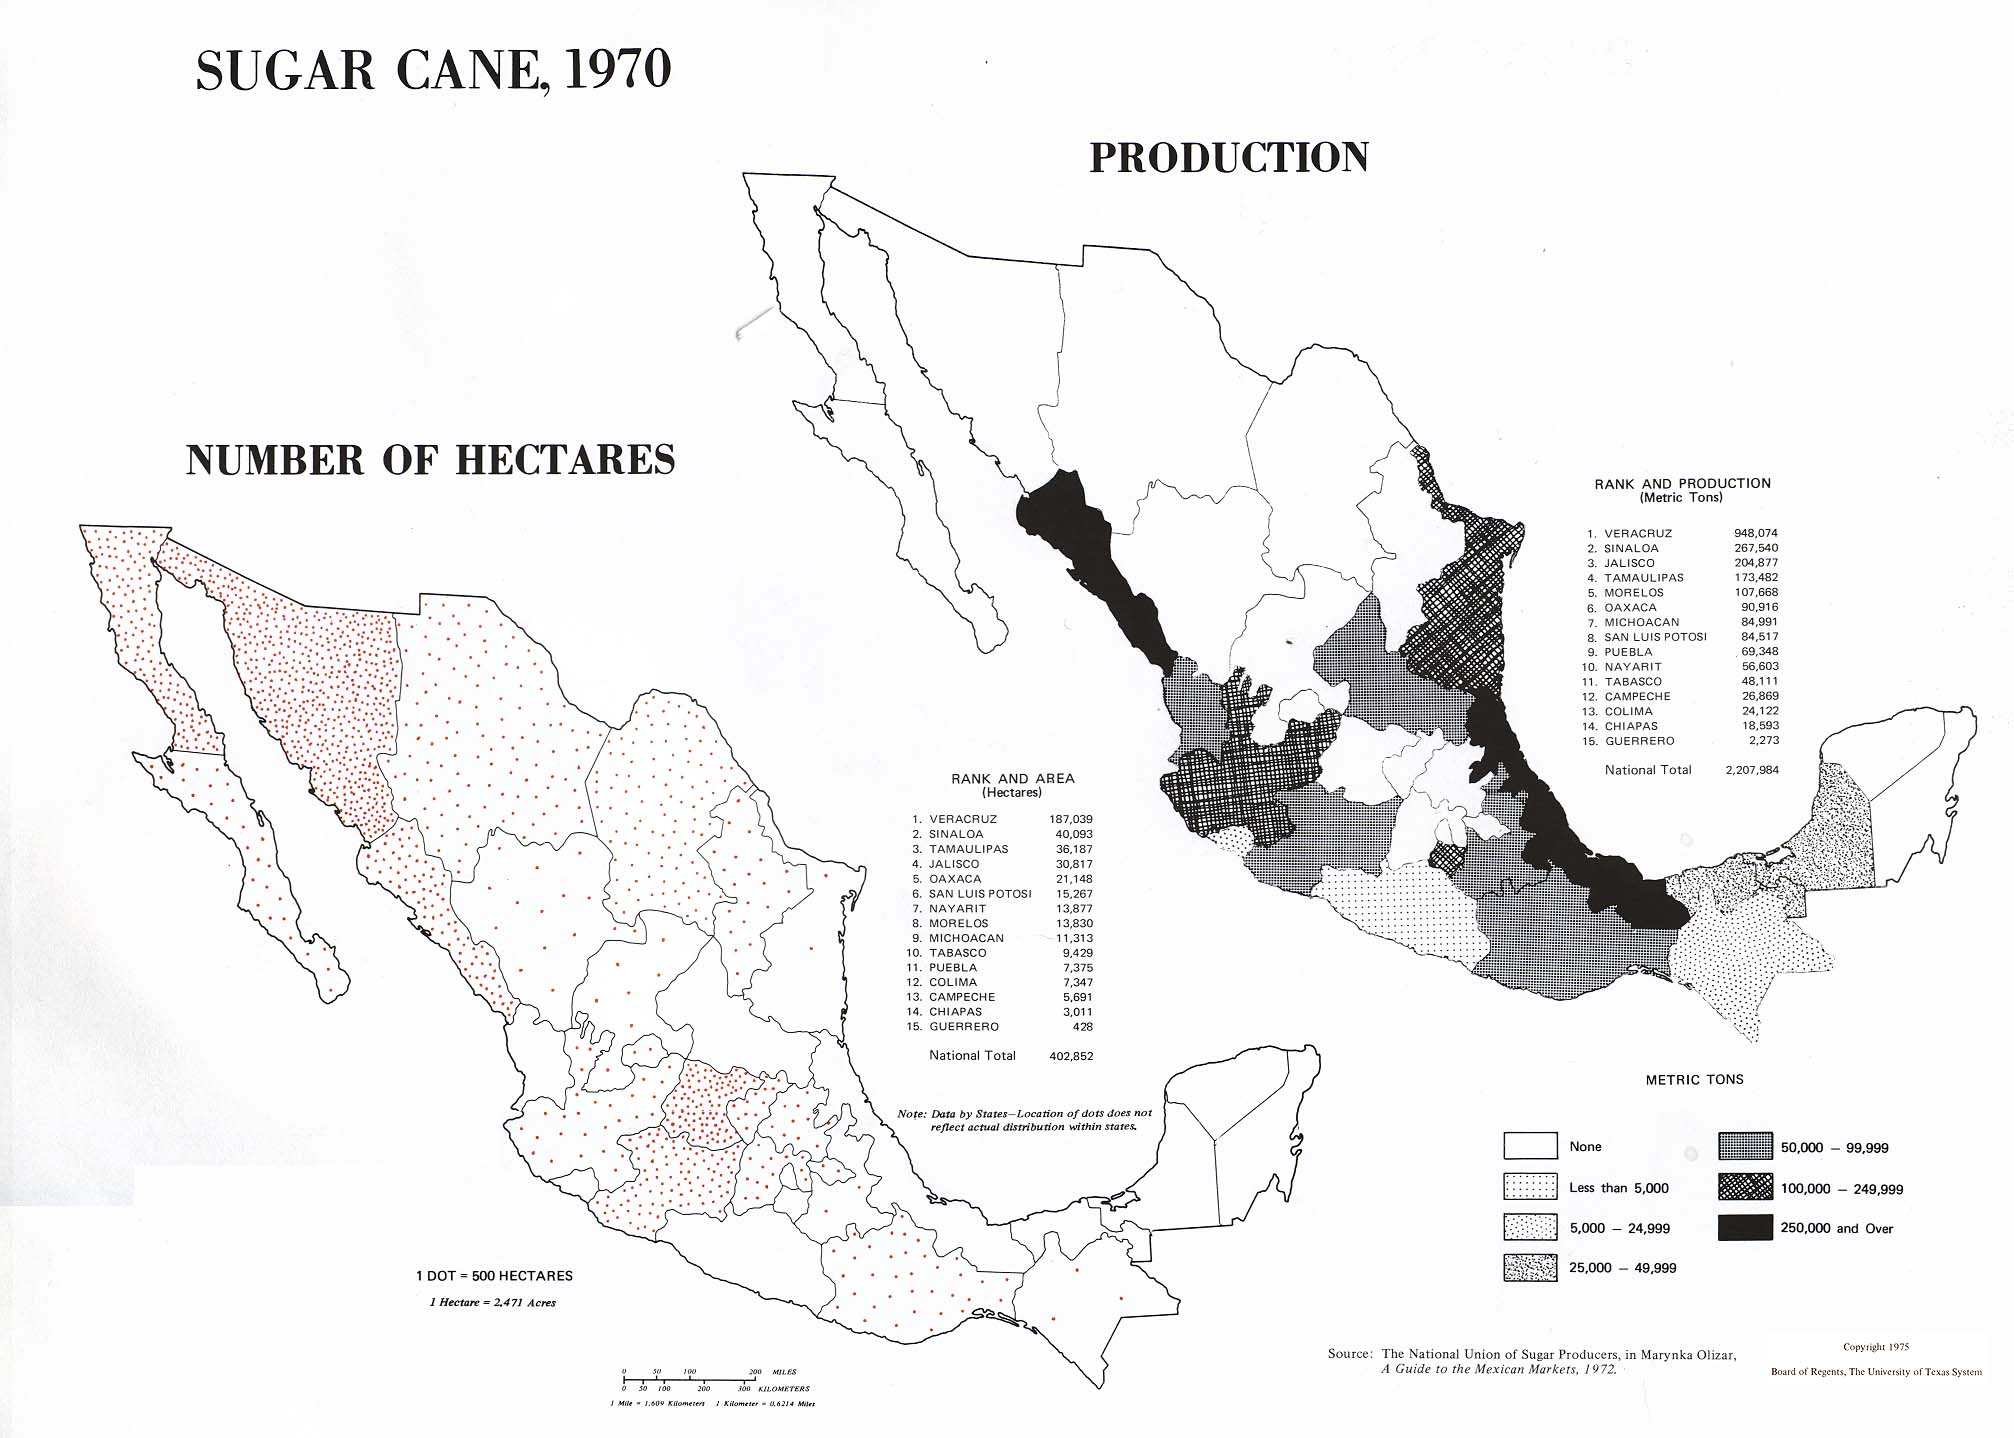 Sugar Cane Production in Mexico 1970